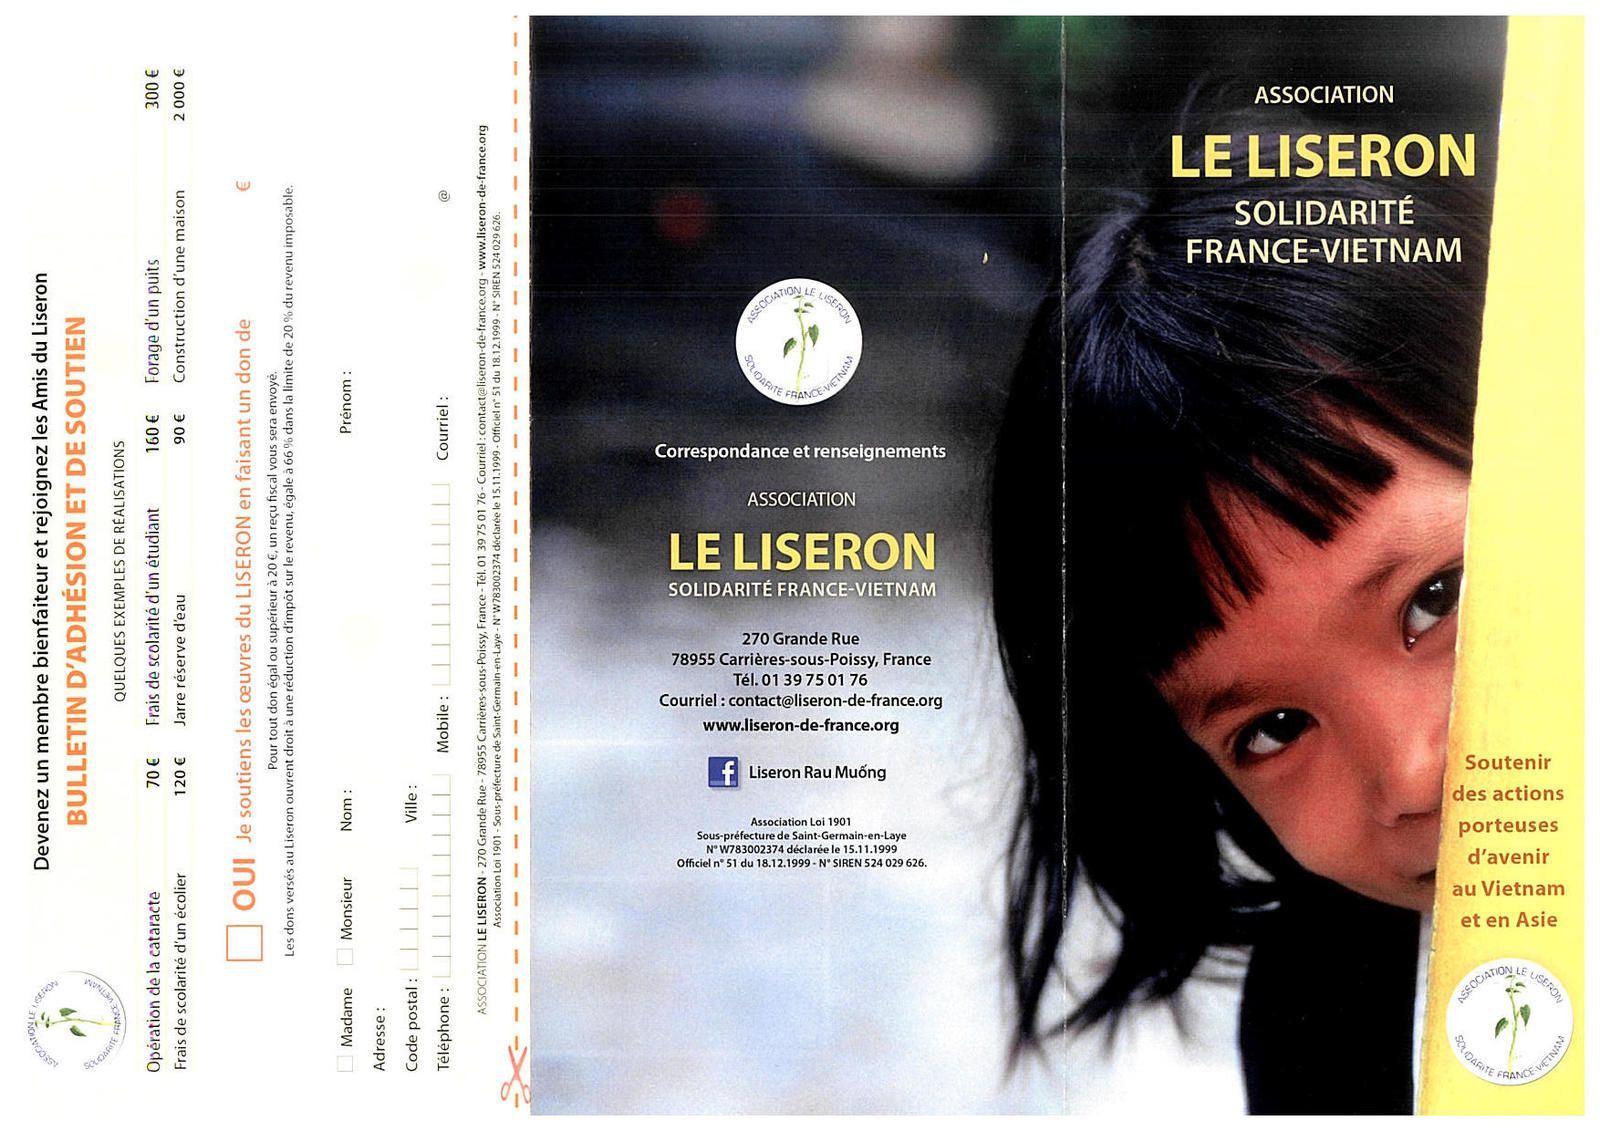 Association Le LISERON